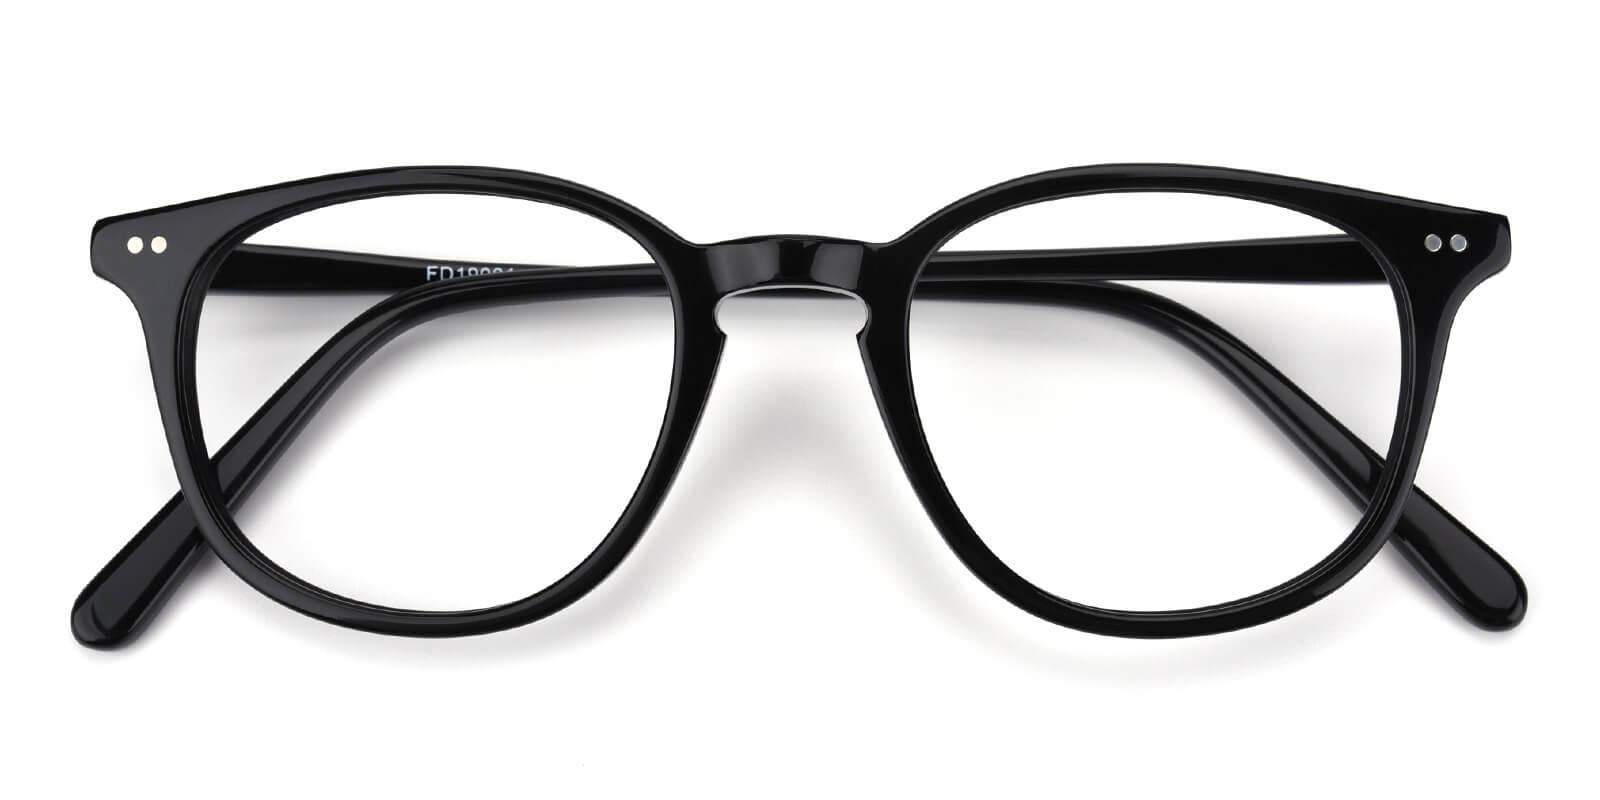 Trendiary-Black-Square-Acetate-Eyeglasses-detail